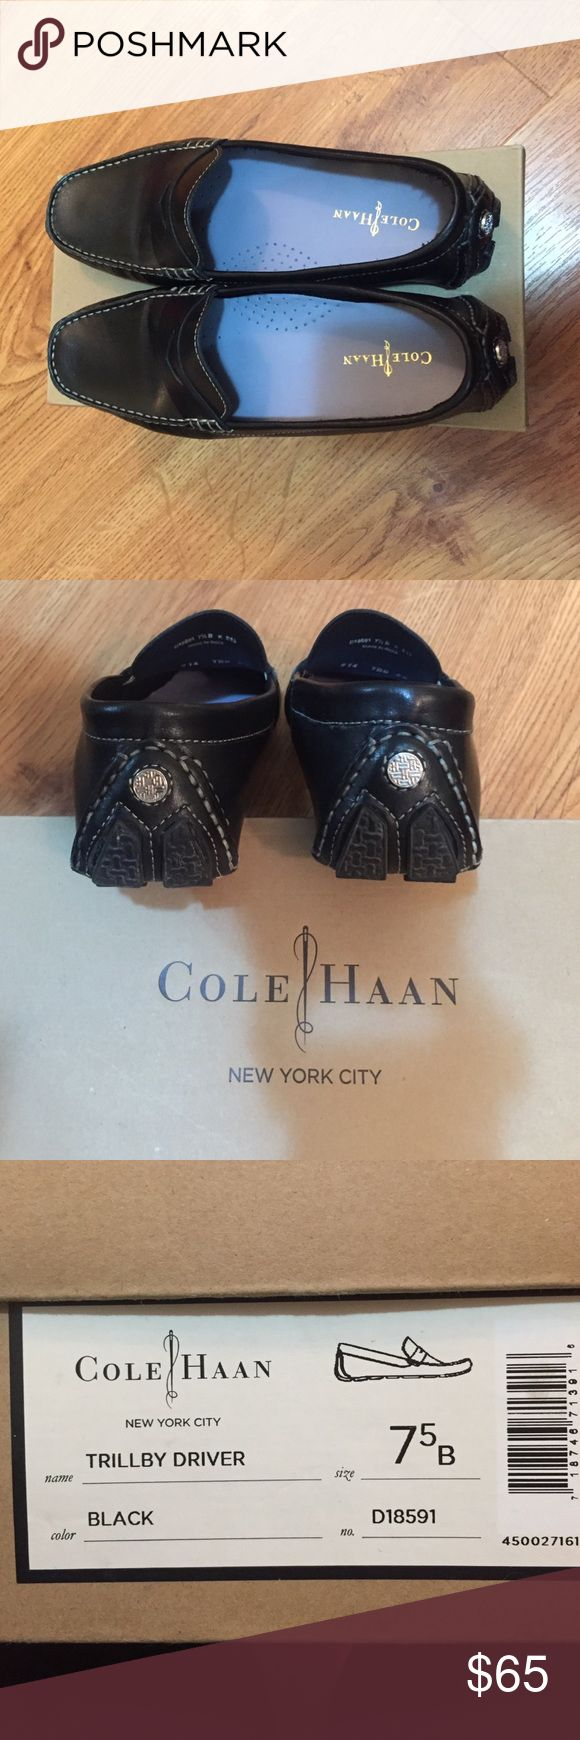 Cole Haan Trillby Driver-Black Beautiful BRAND New stylish and comfortable BLACK leather Cole Haans. Original box! They are to big for me. Cole Haan Shoes Flats & Loafers